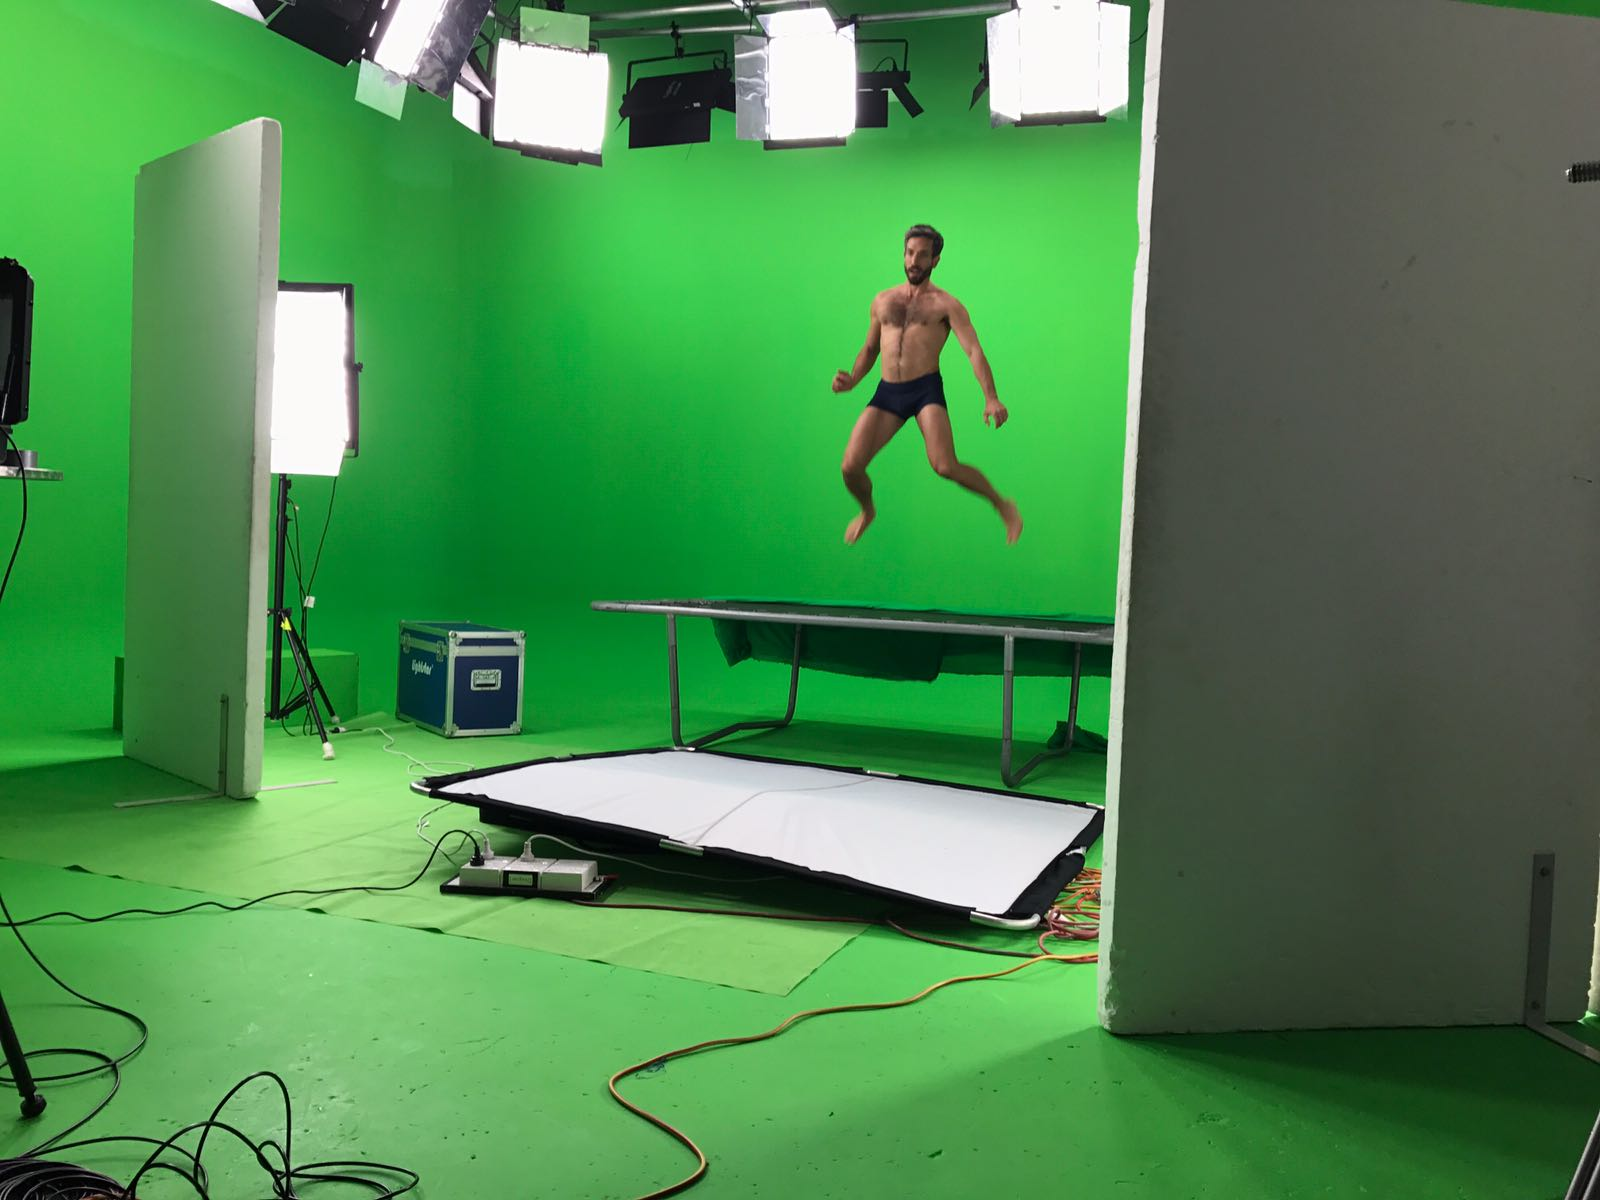 A male model jumping on a trampoline in a green screen studio.